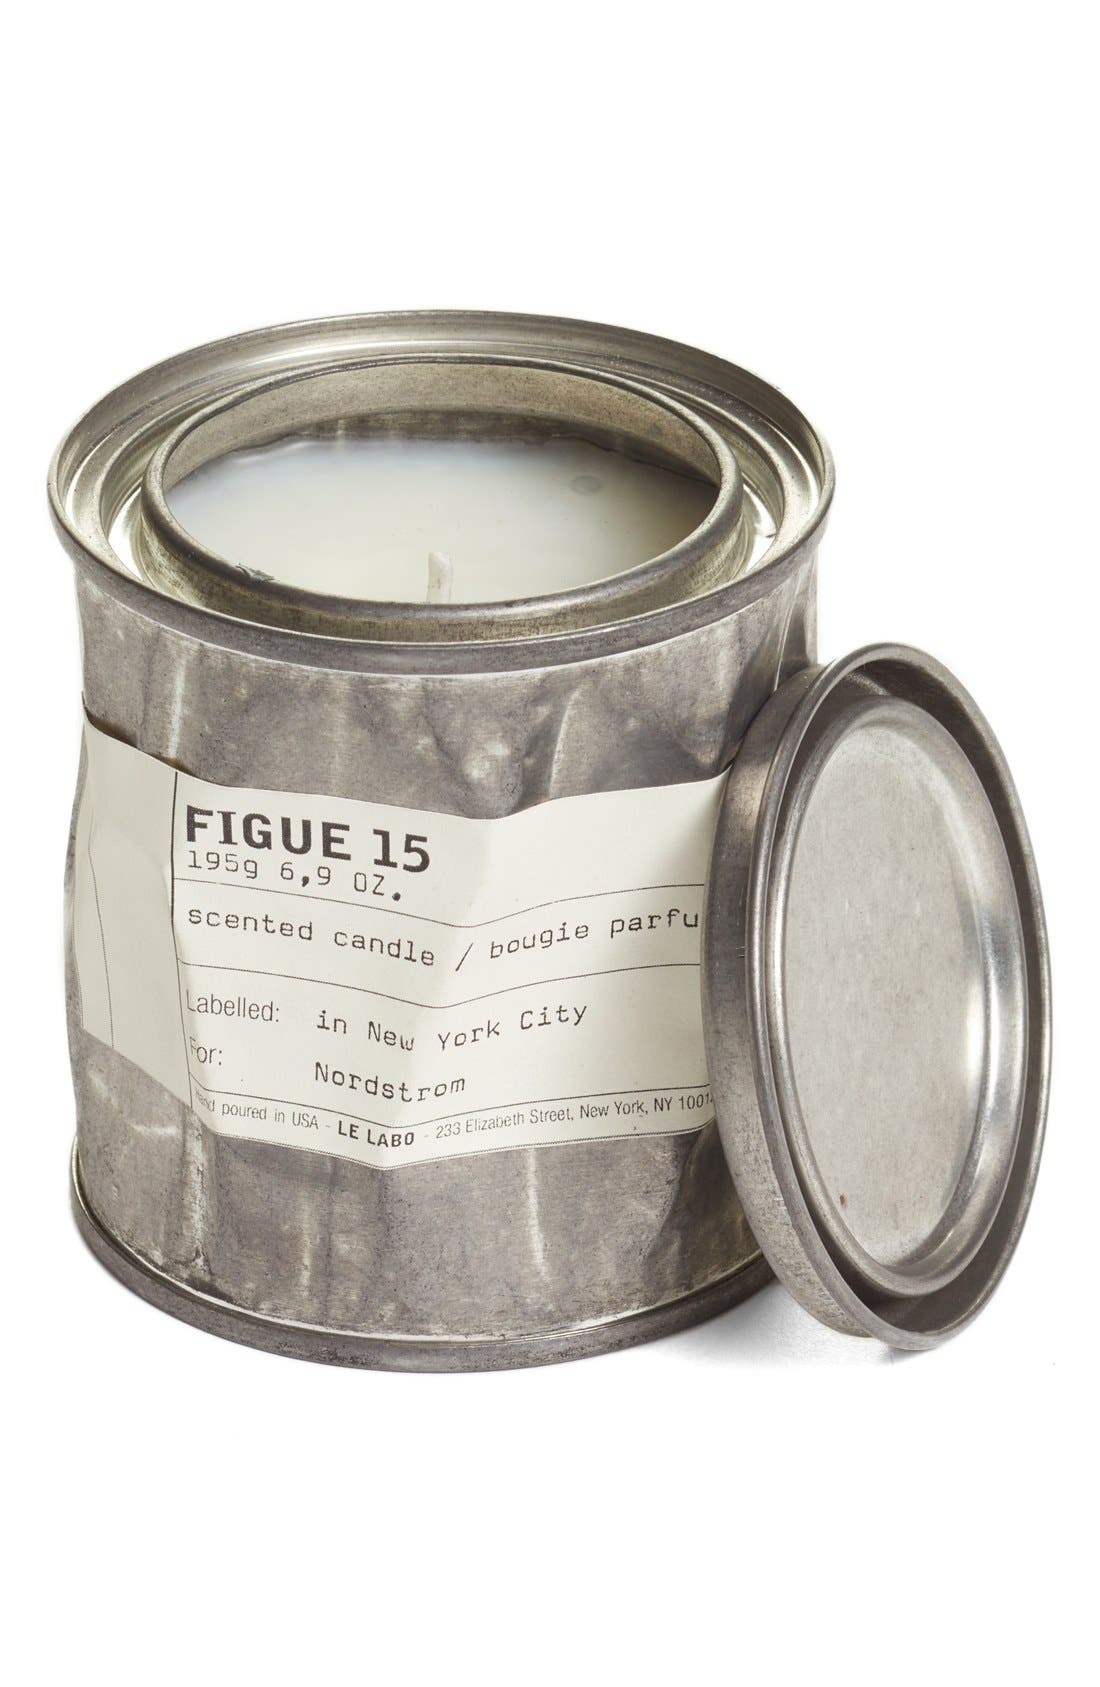 Alternate Image 1 Selected - Le Labo 'Figue 15' Vintage Candle Tin